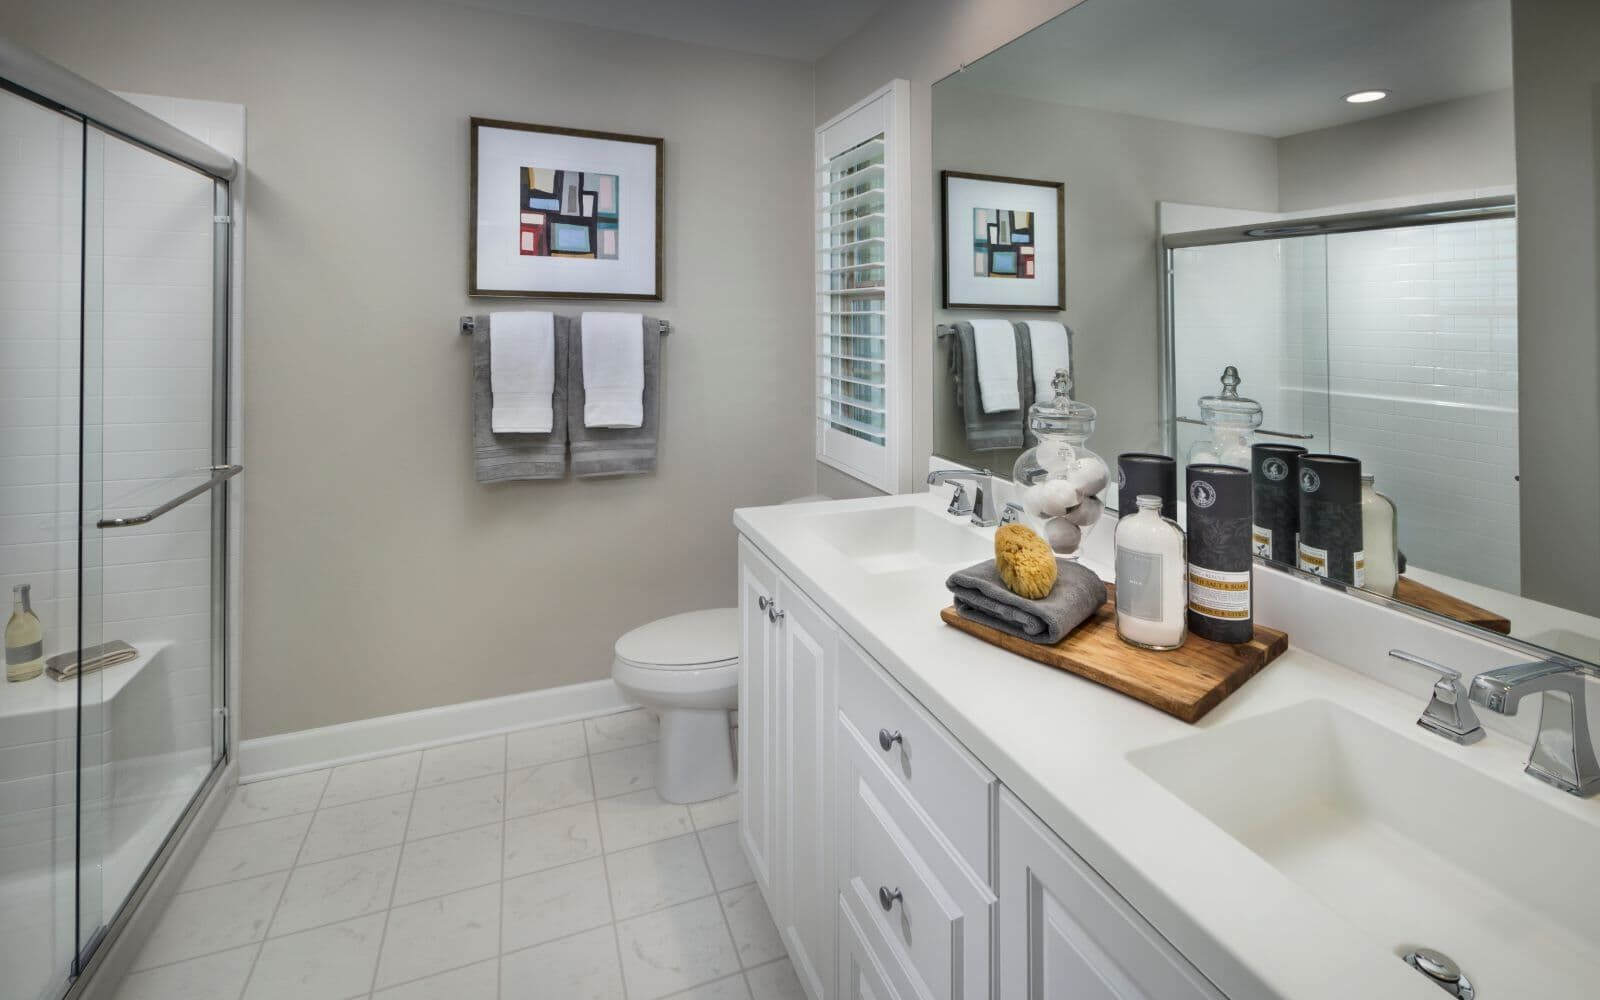 Bathroom featured in the Residence 1 By Brookfield Residential in San Diego, CA